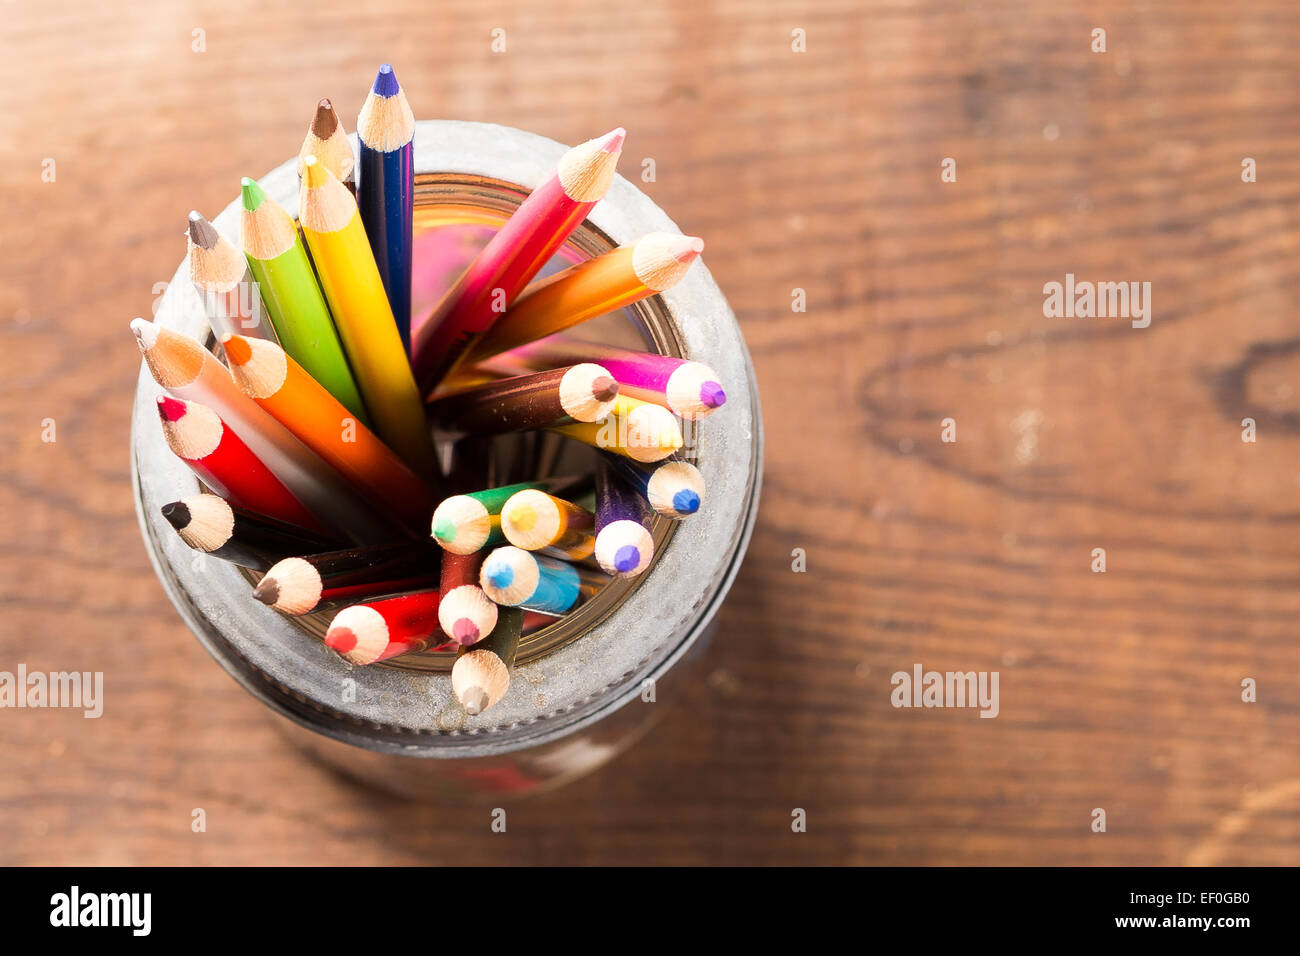 Coloured Pencil Crayons - Stock Image